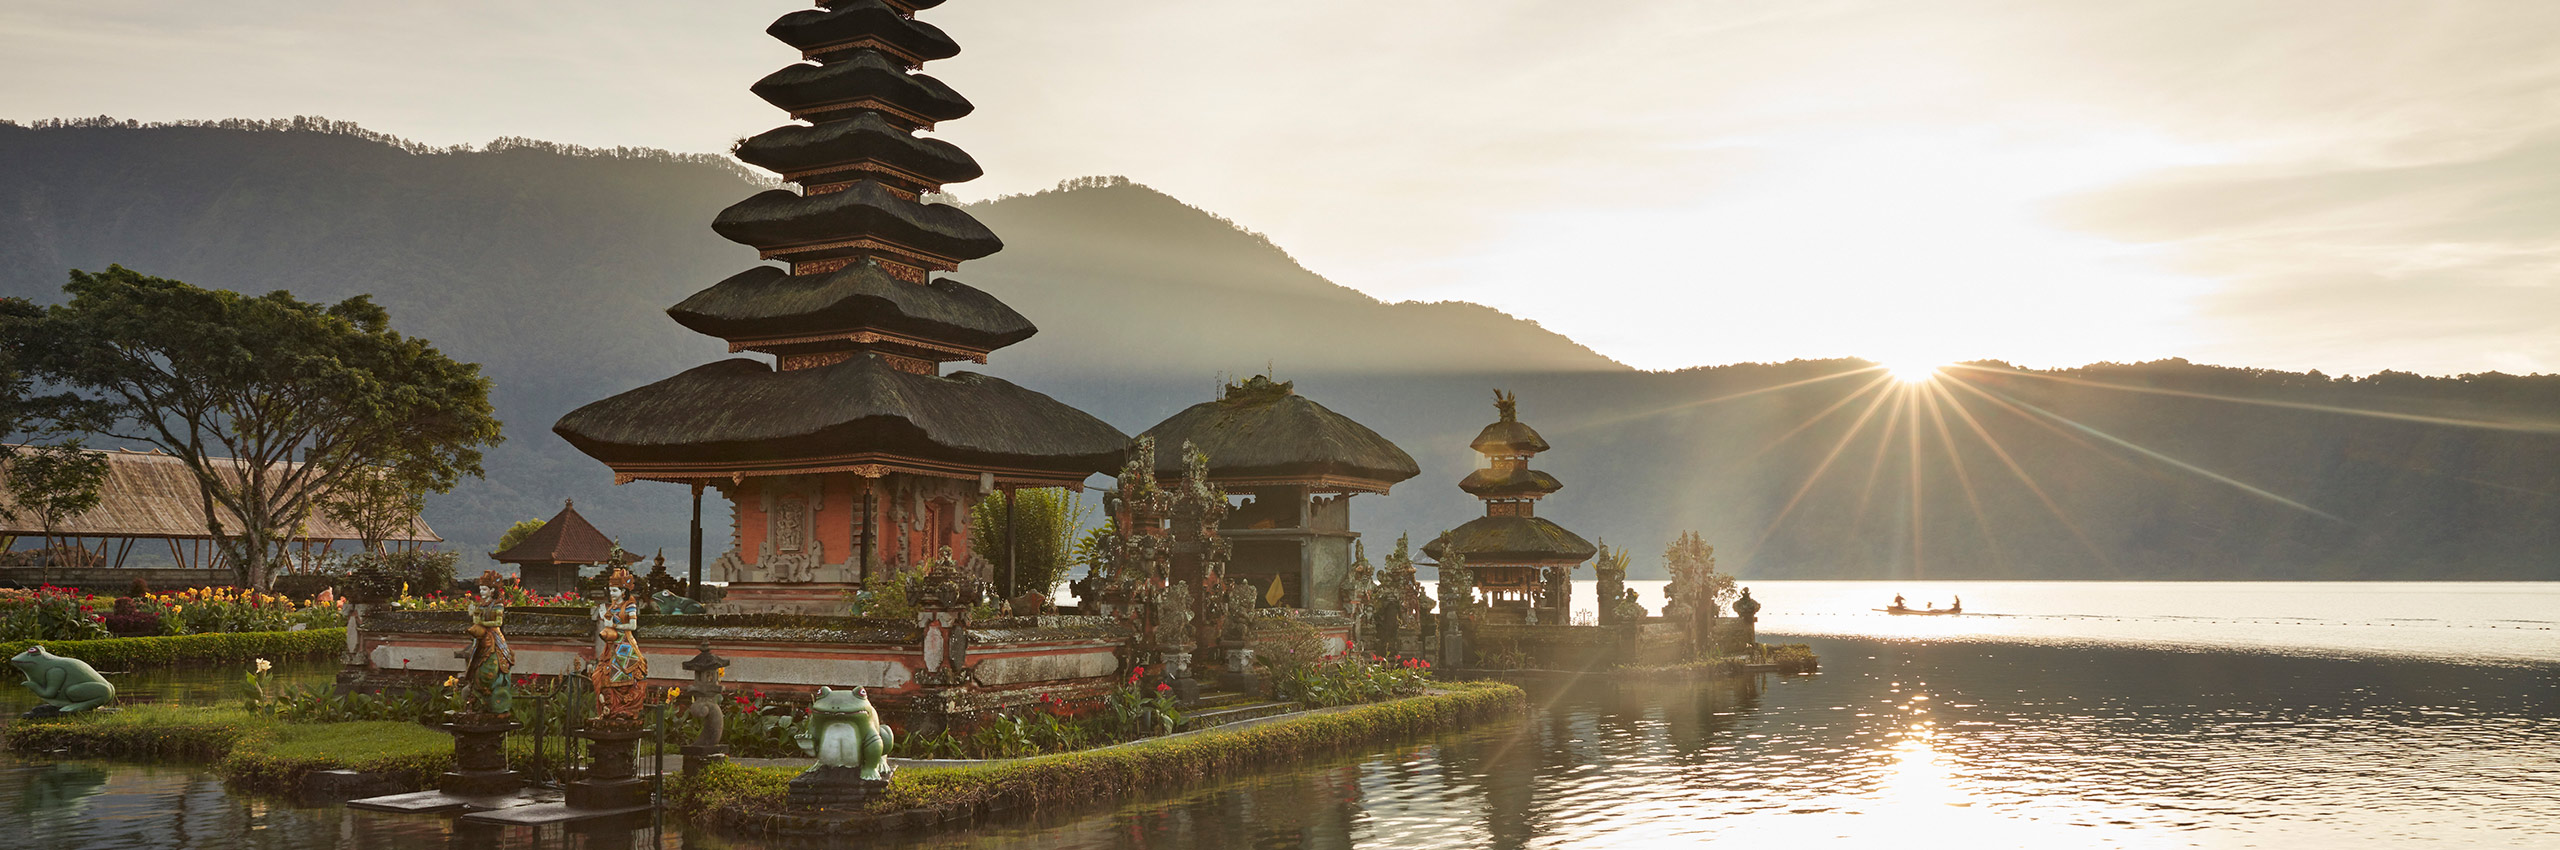 FCR-504193 | Indonesia/Bali | © Richard Taylor/4Corners